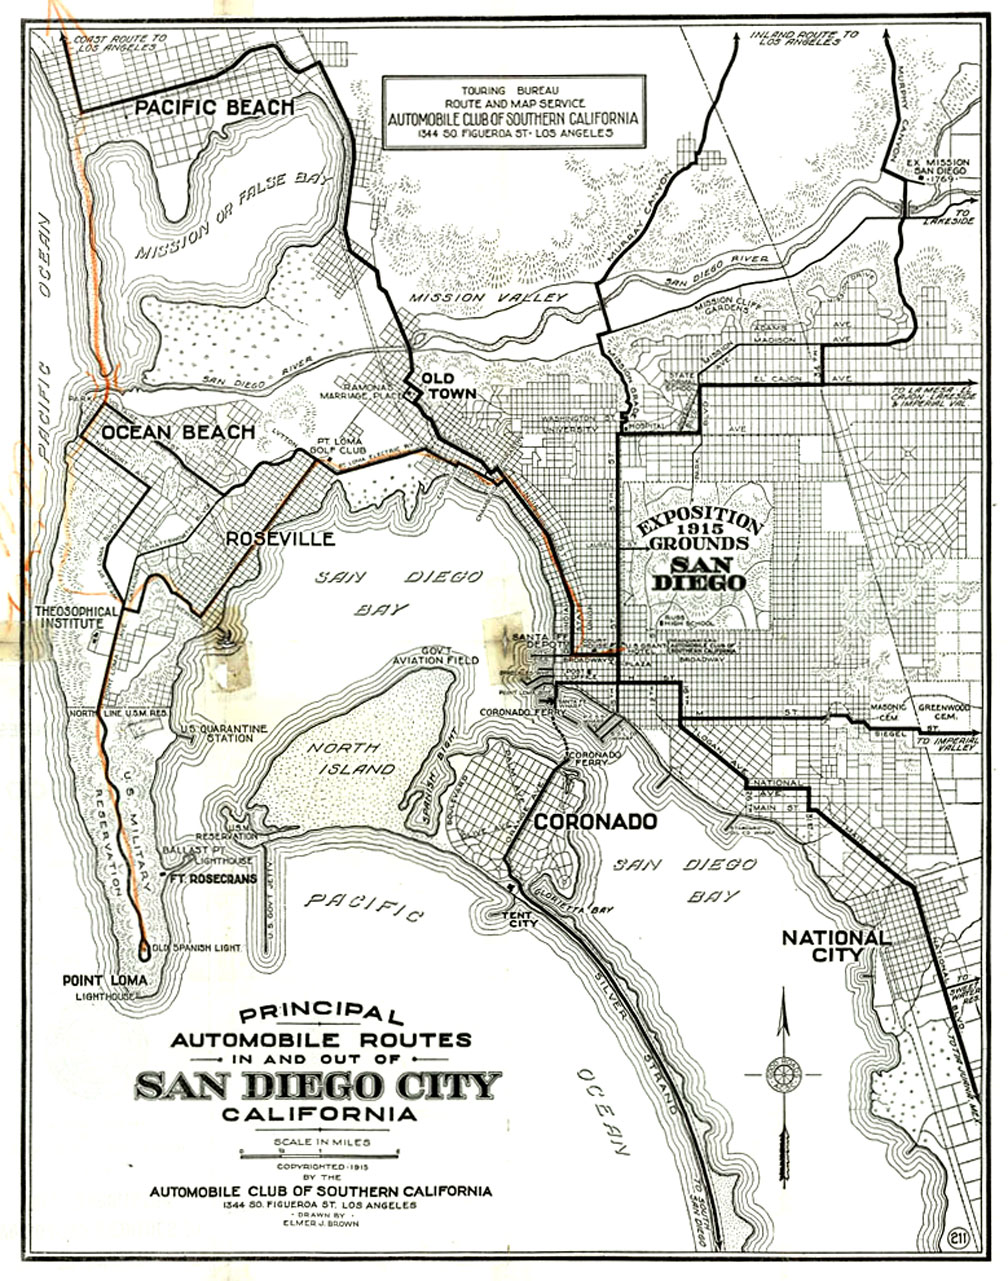 Automobile Club of Southern California Maps of San Diego